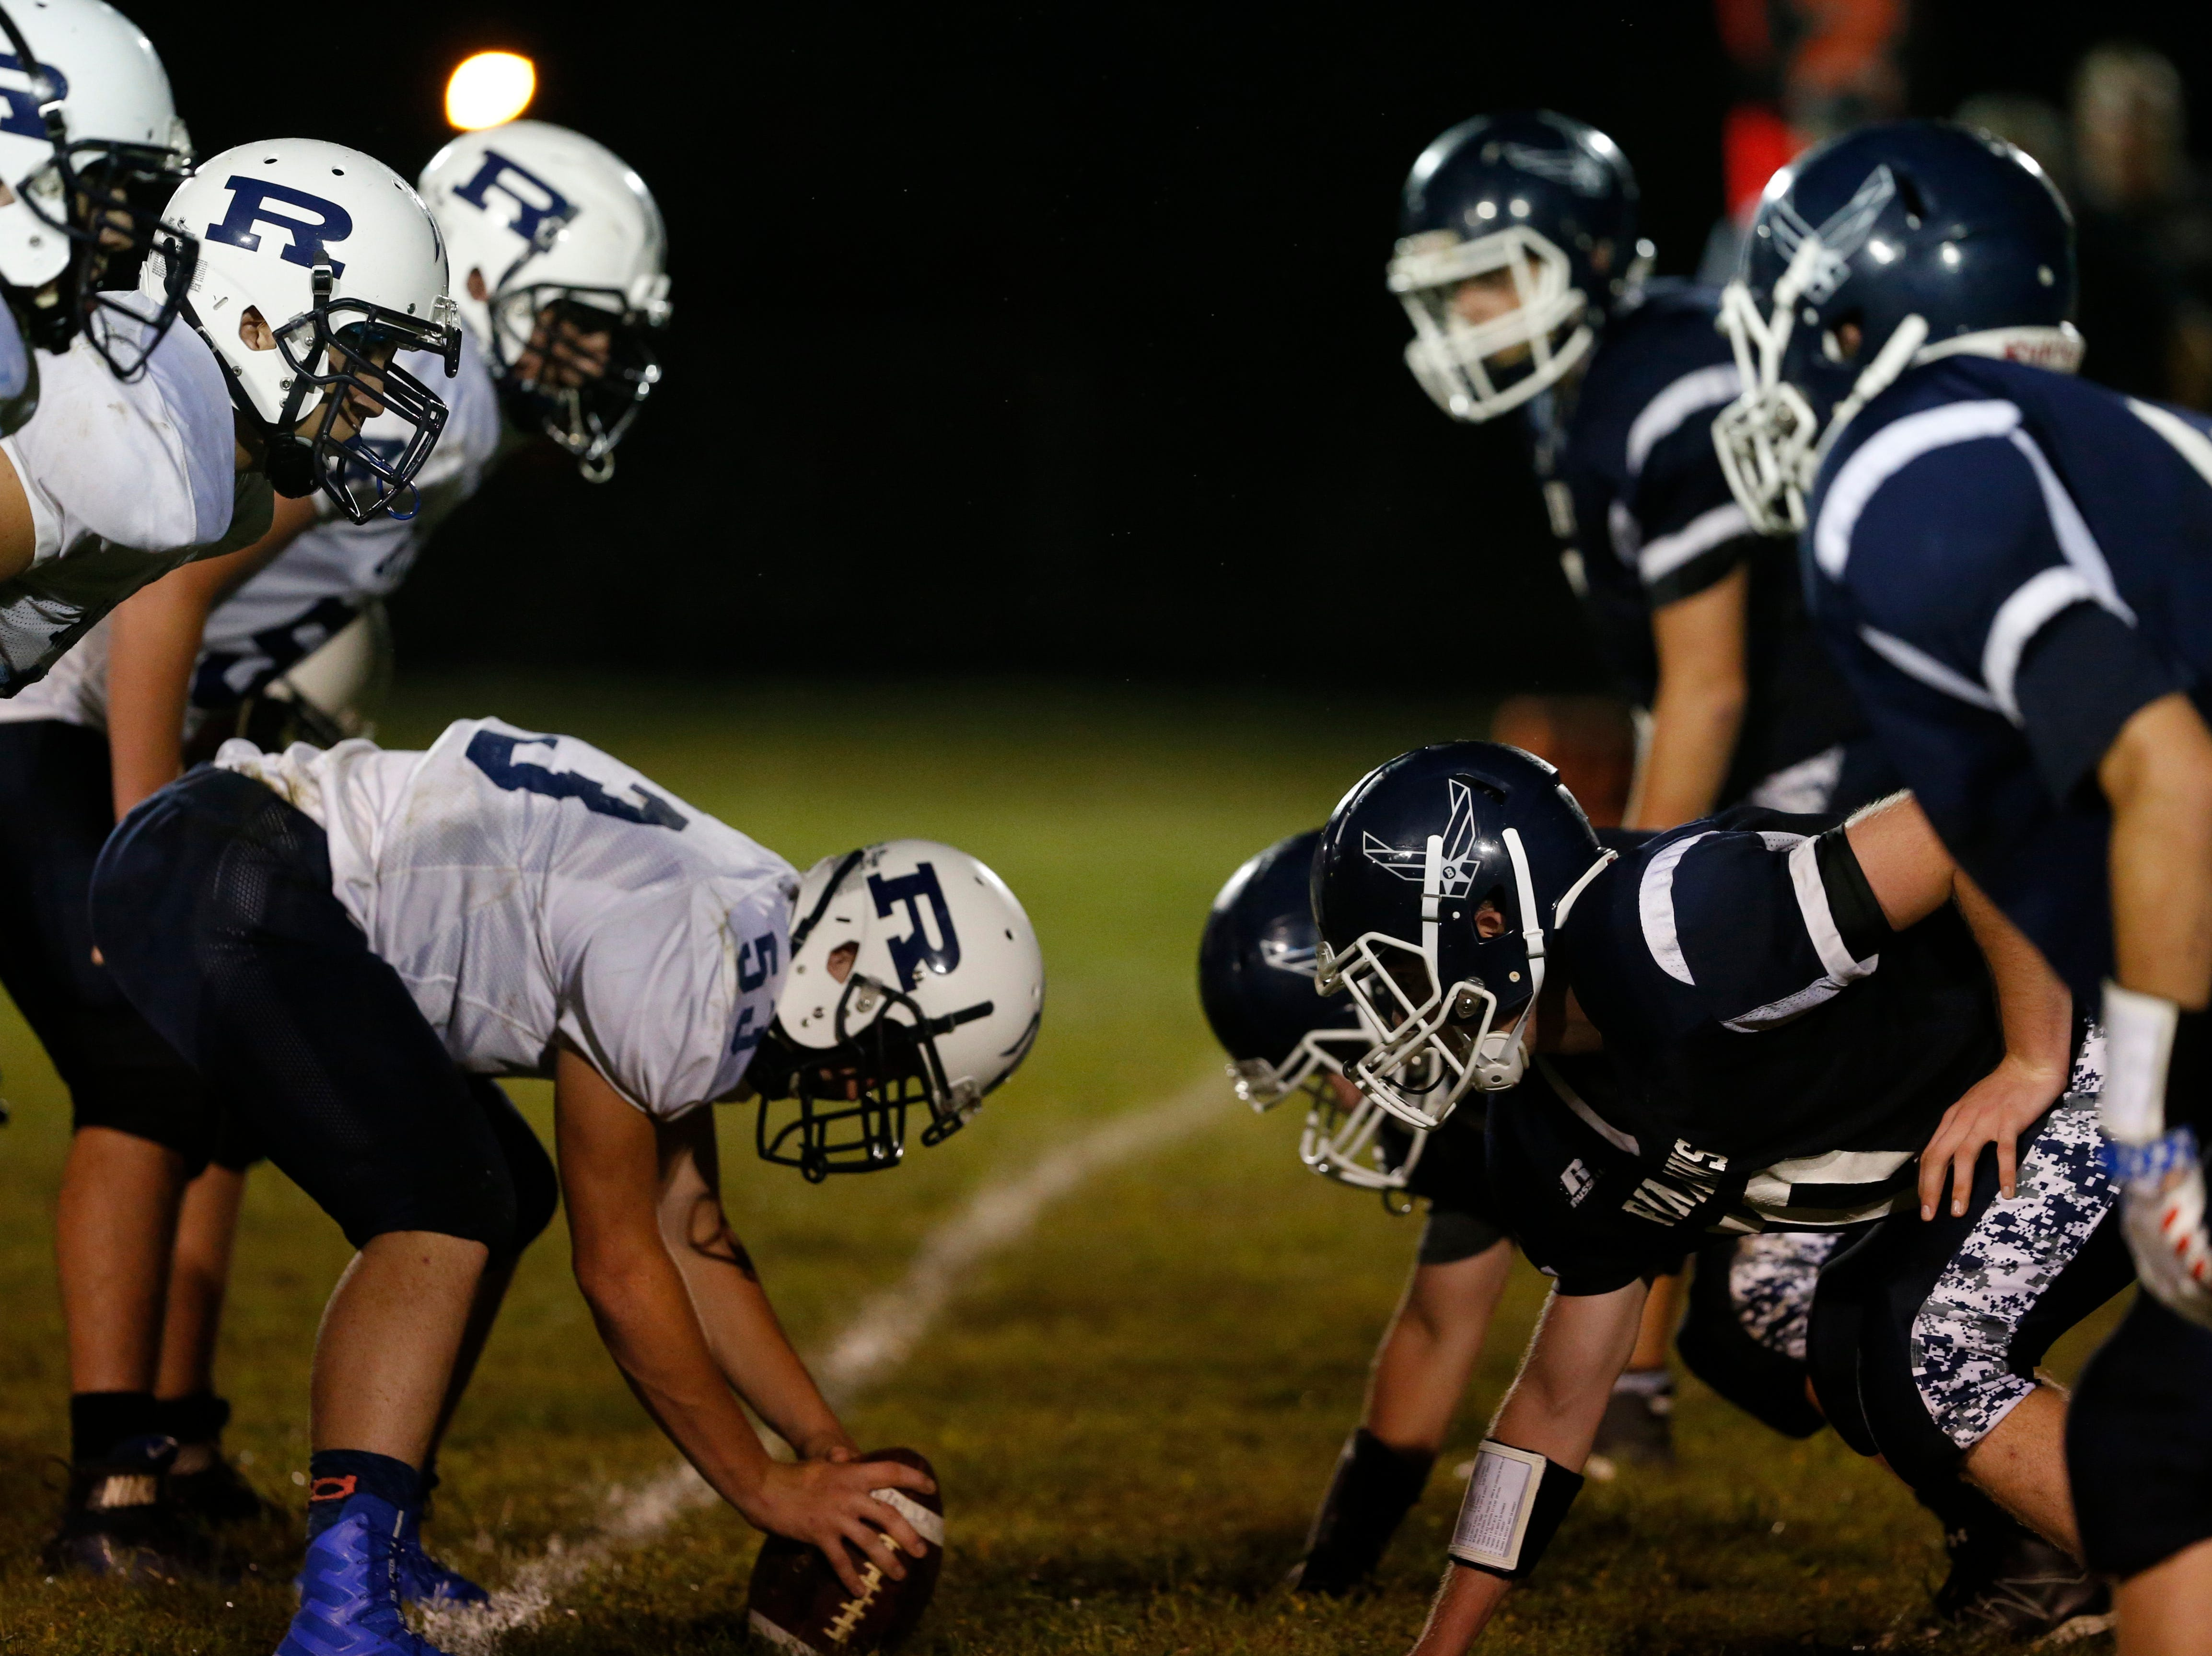 The Roscoe (left) and Pine Plains offensive lines ready for a snap at the line of scrimmage during an eight-man football game on Friday.